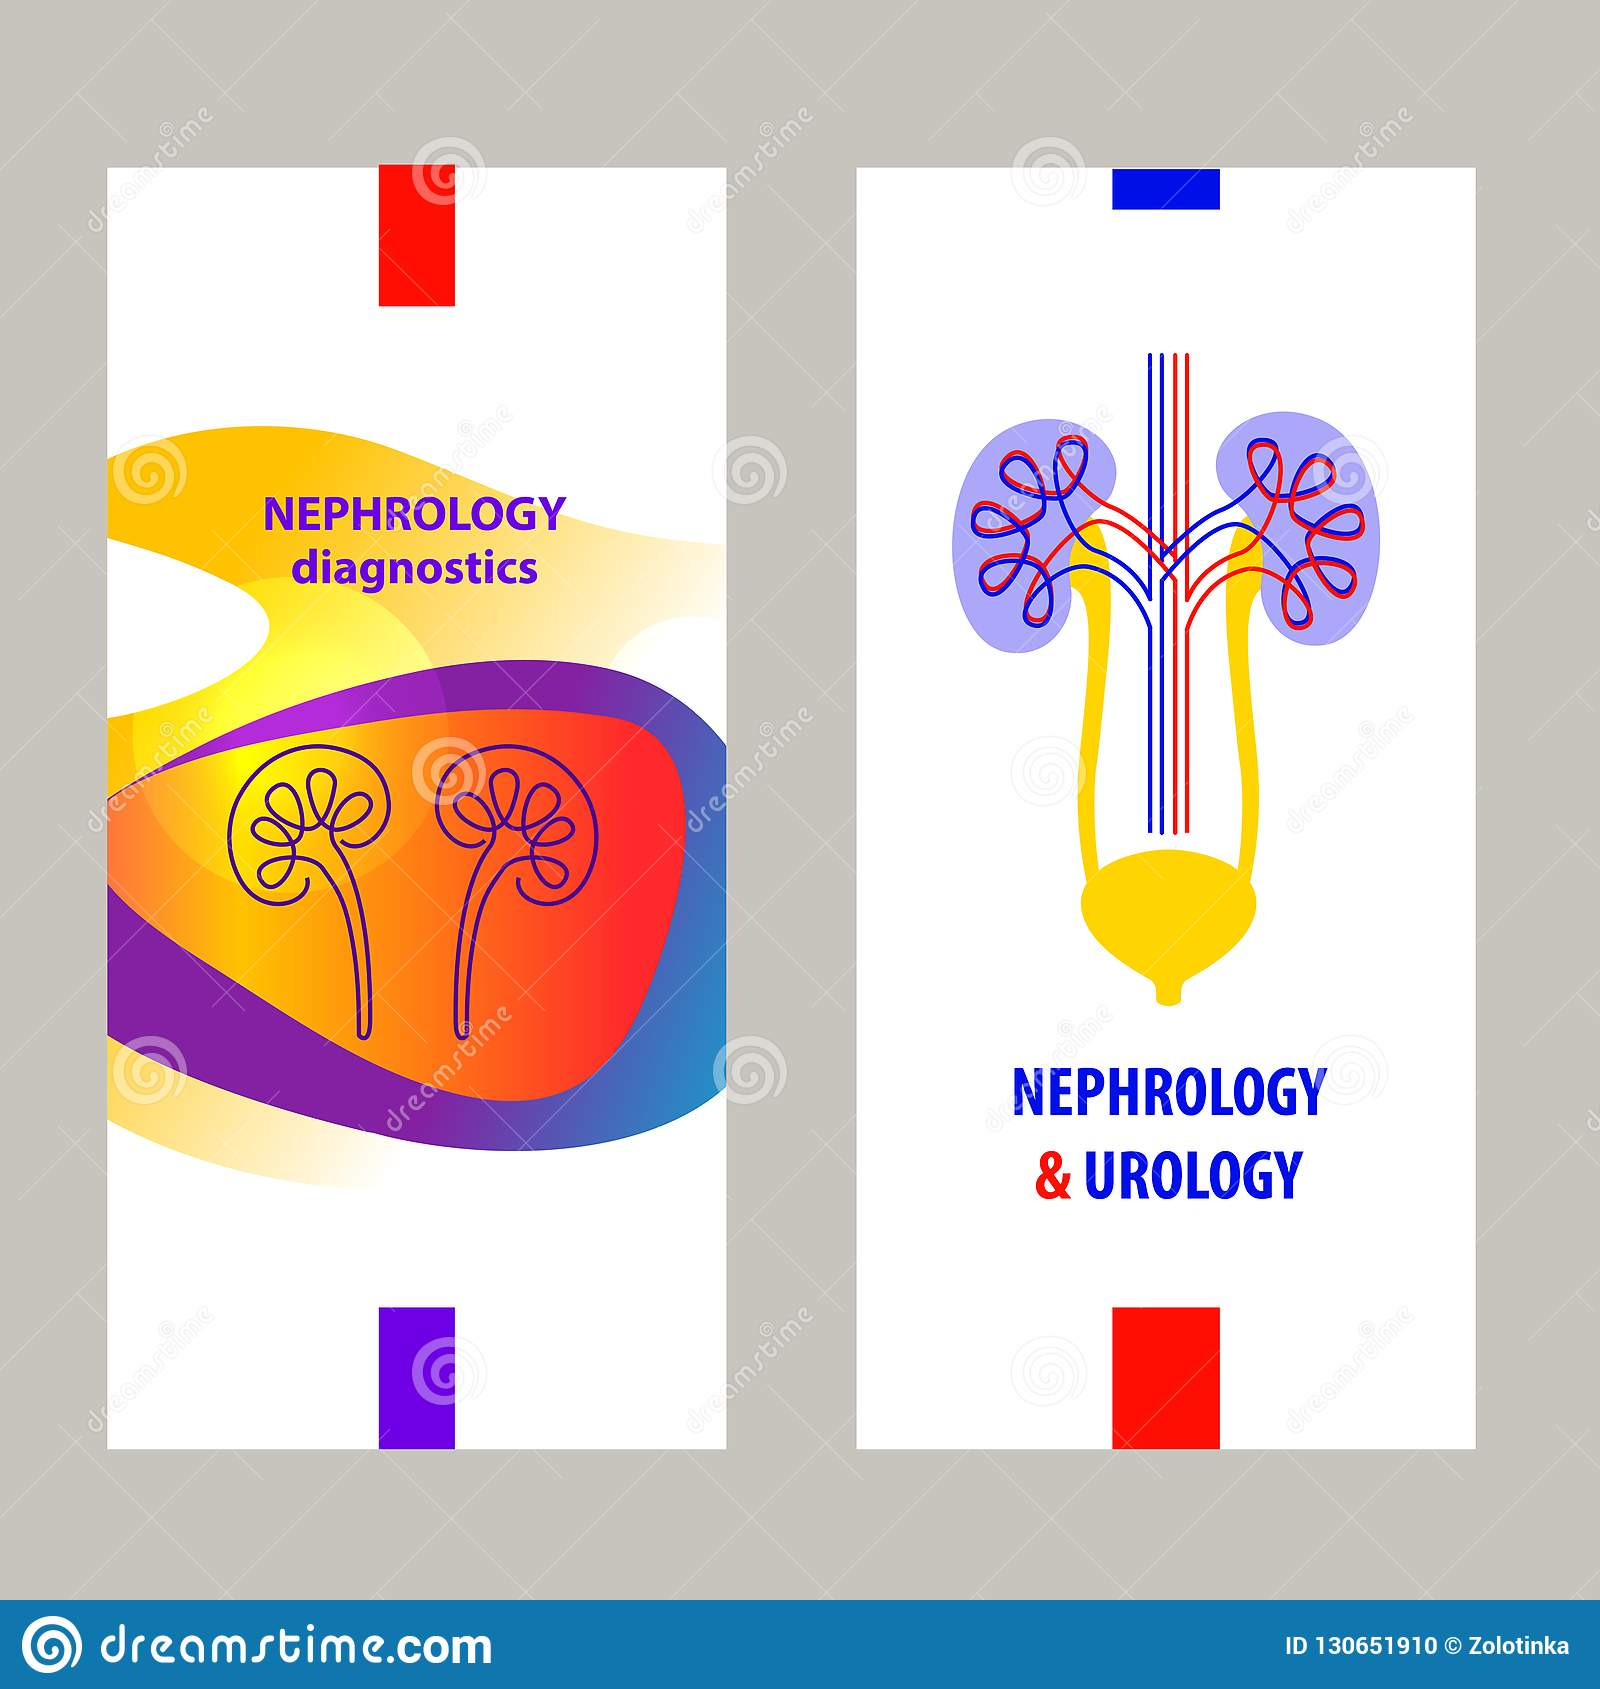 Template Simple Style Logo Banner Poster Flyer For Medical Clinic Cabinet Concept Diagnosis And Treatment Nephrology Urology Stock Illustration Illustration Of Internal Kidney 130651910